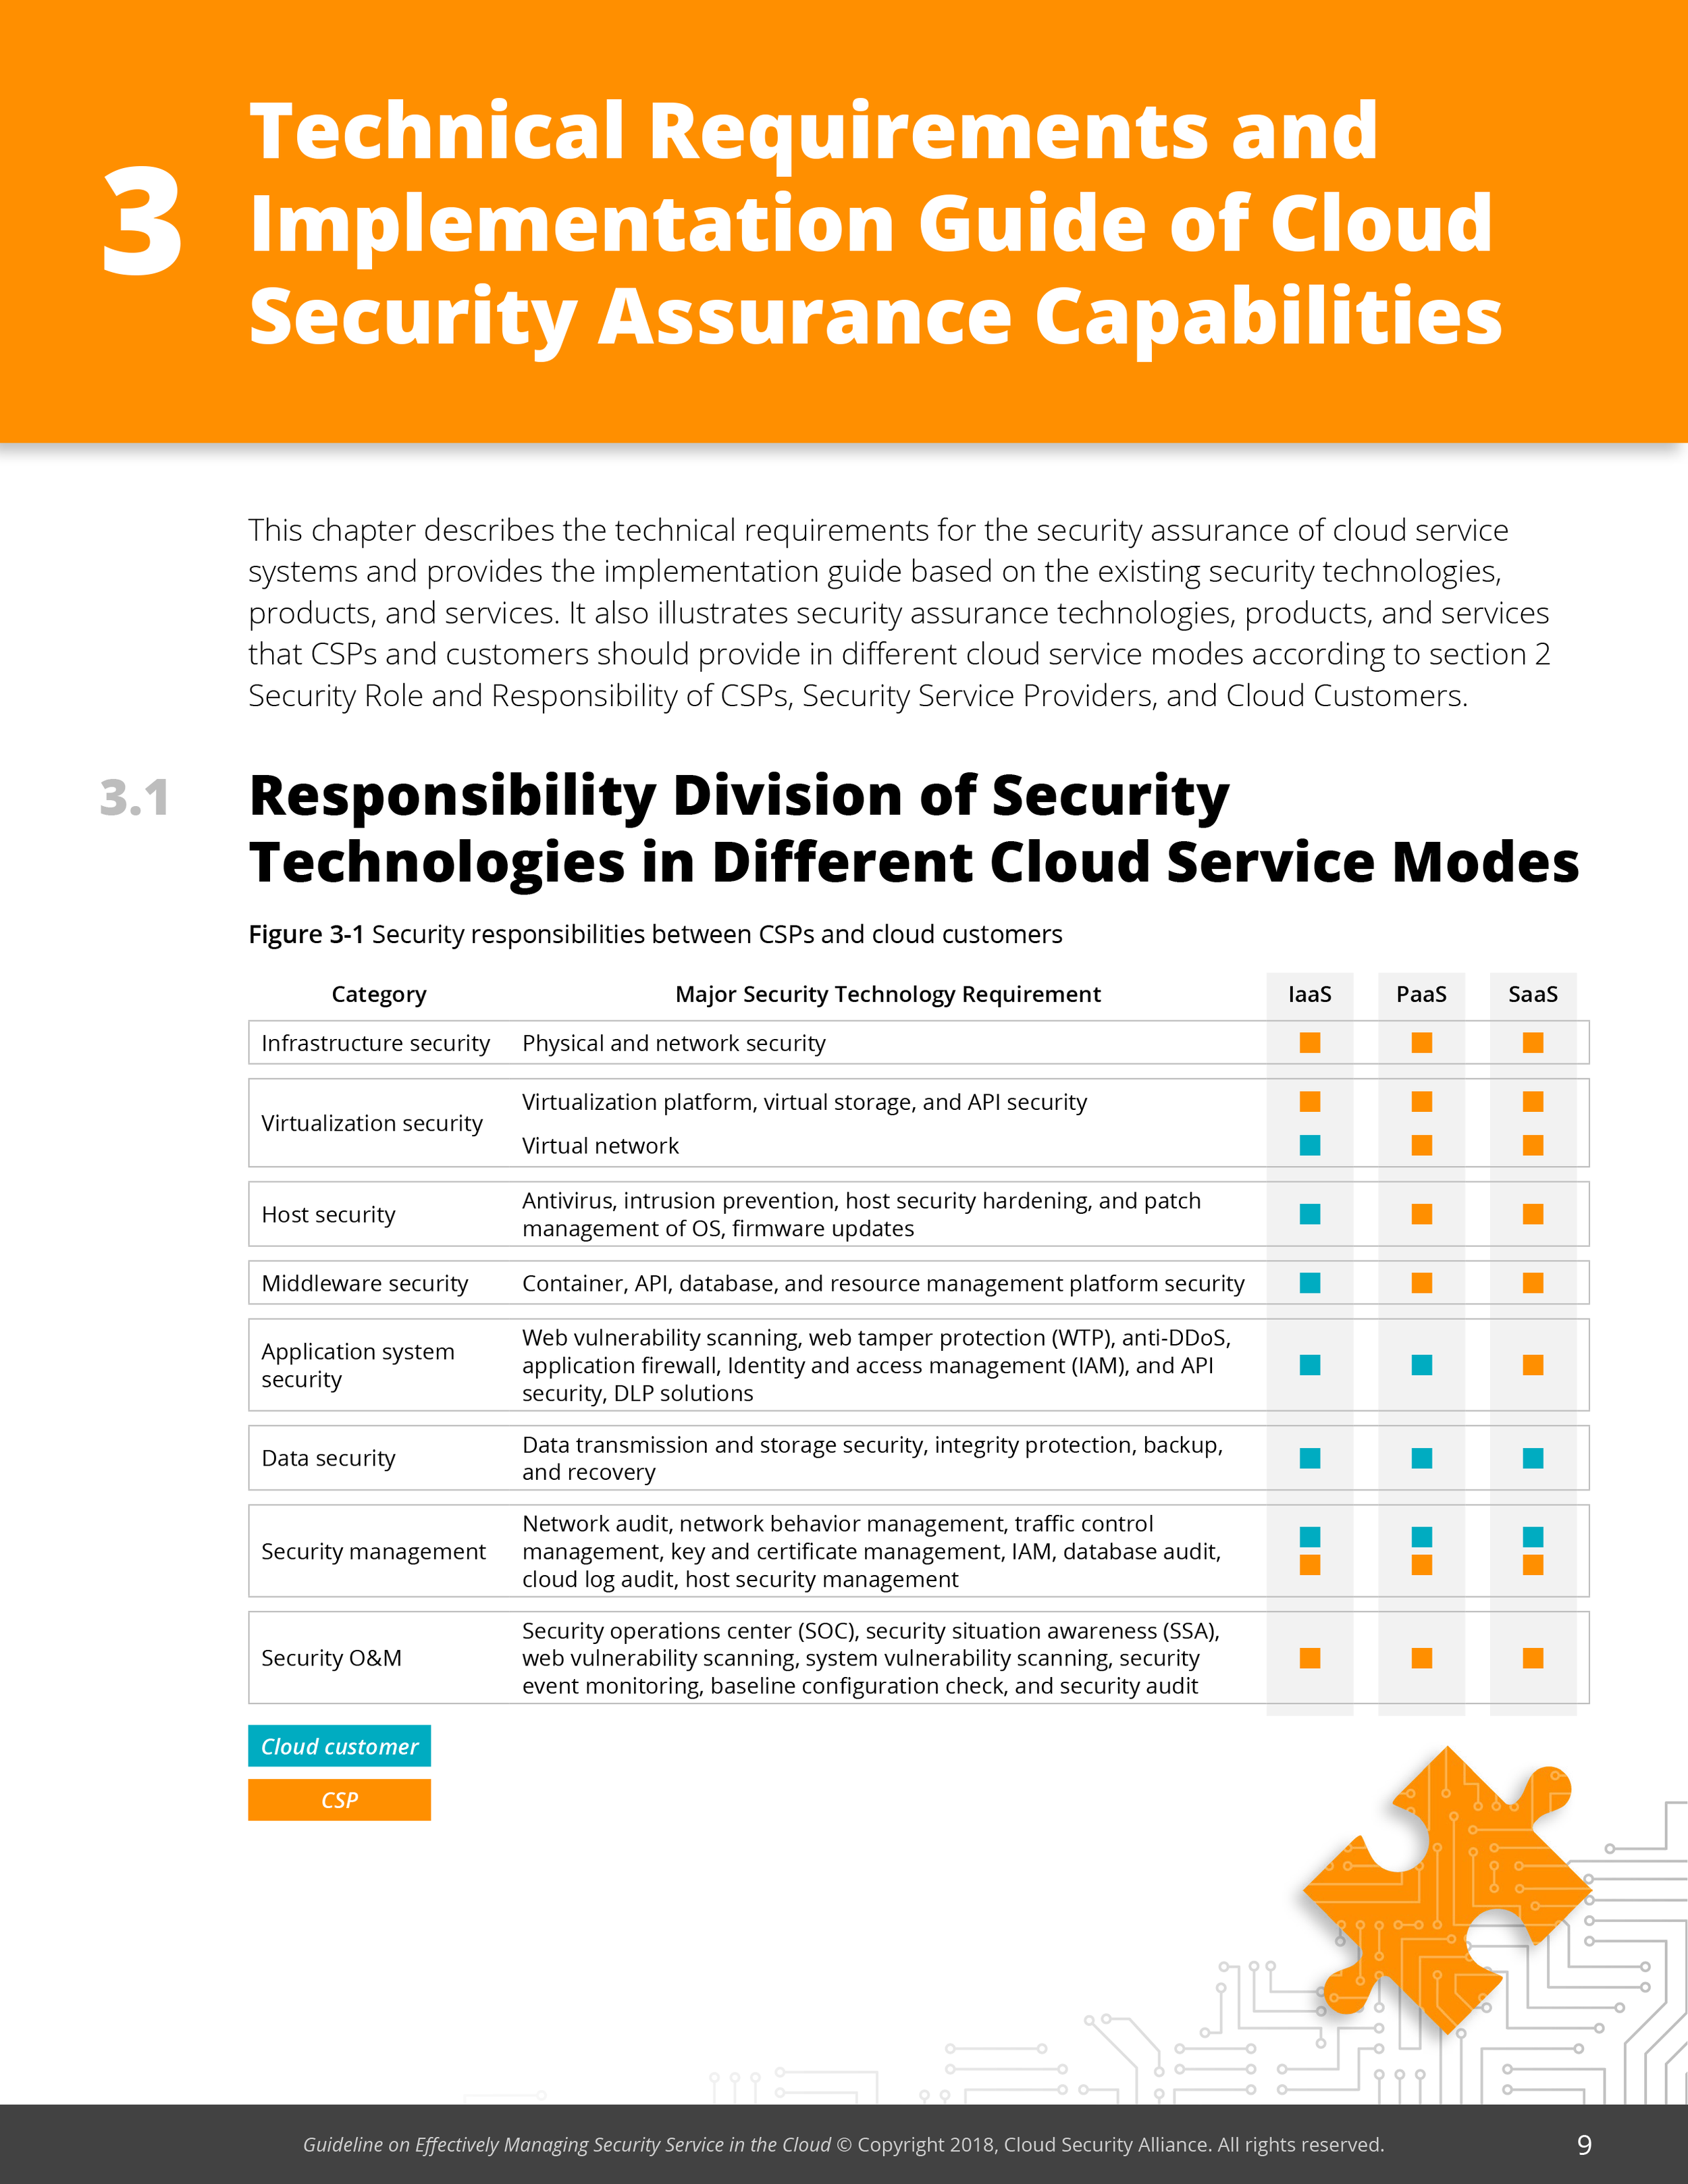 Guideline on Effectively Managing Security Service in the Cloud 10.2.18-10.png